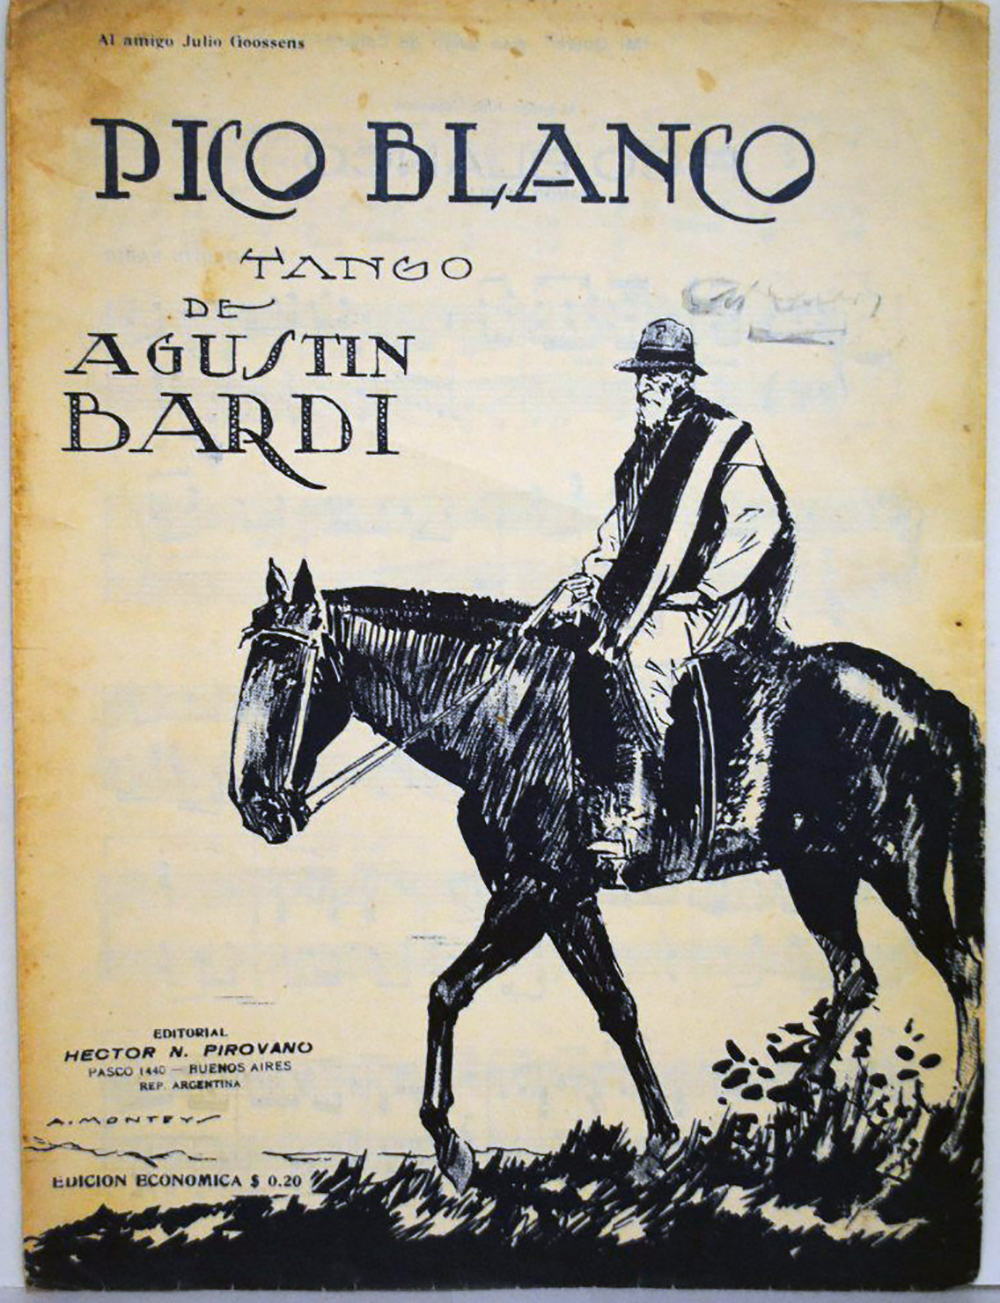 Pico blanco, Argentine Tango composed by Agustín Bardi. Music sheet cover